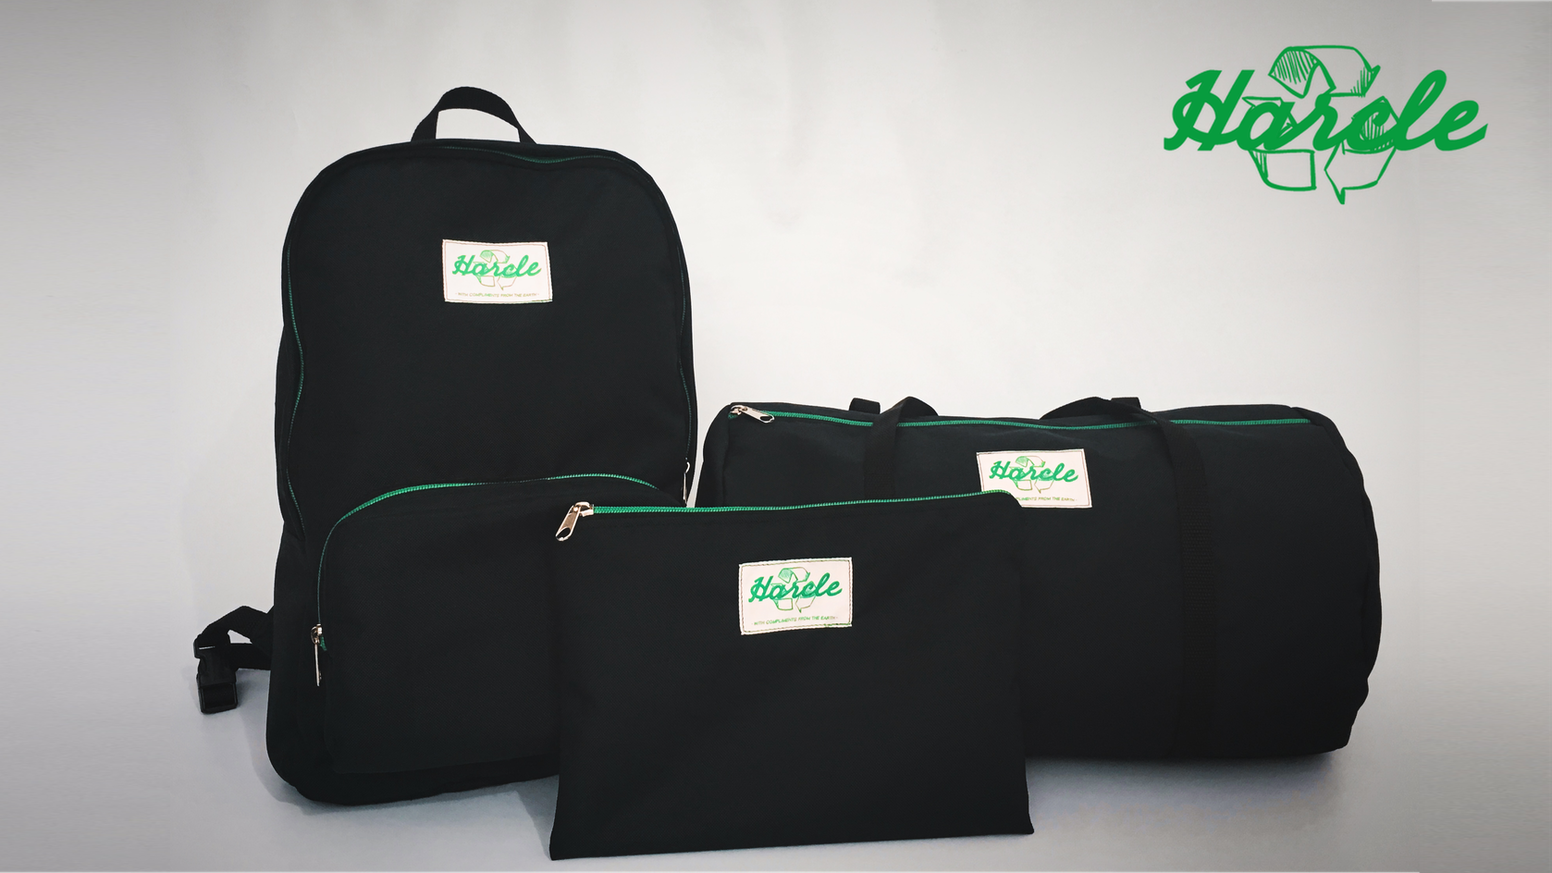 Clean designed & eco-friendly Backpack, Duffle Bag & Pouch.